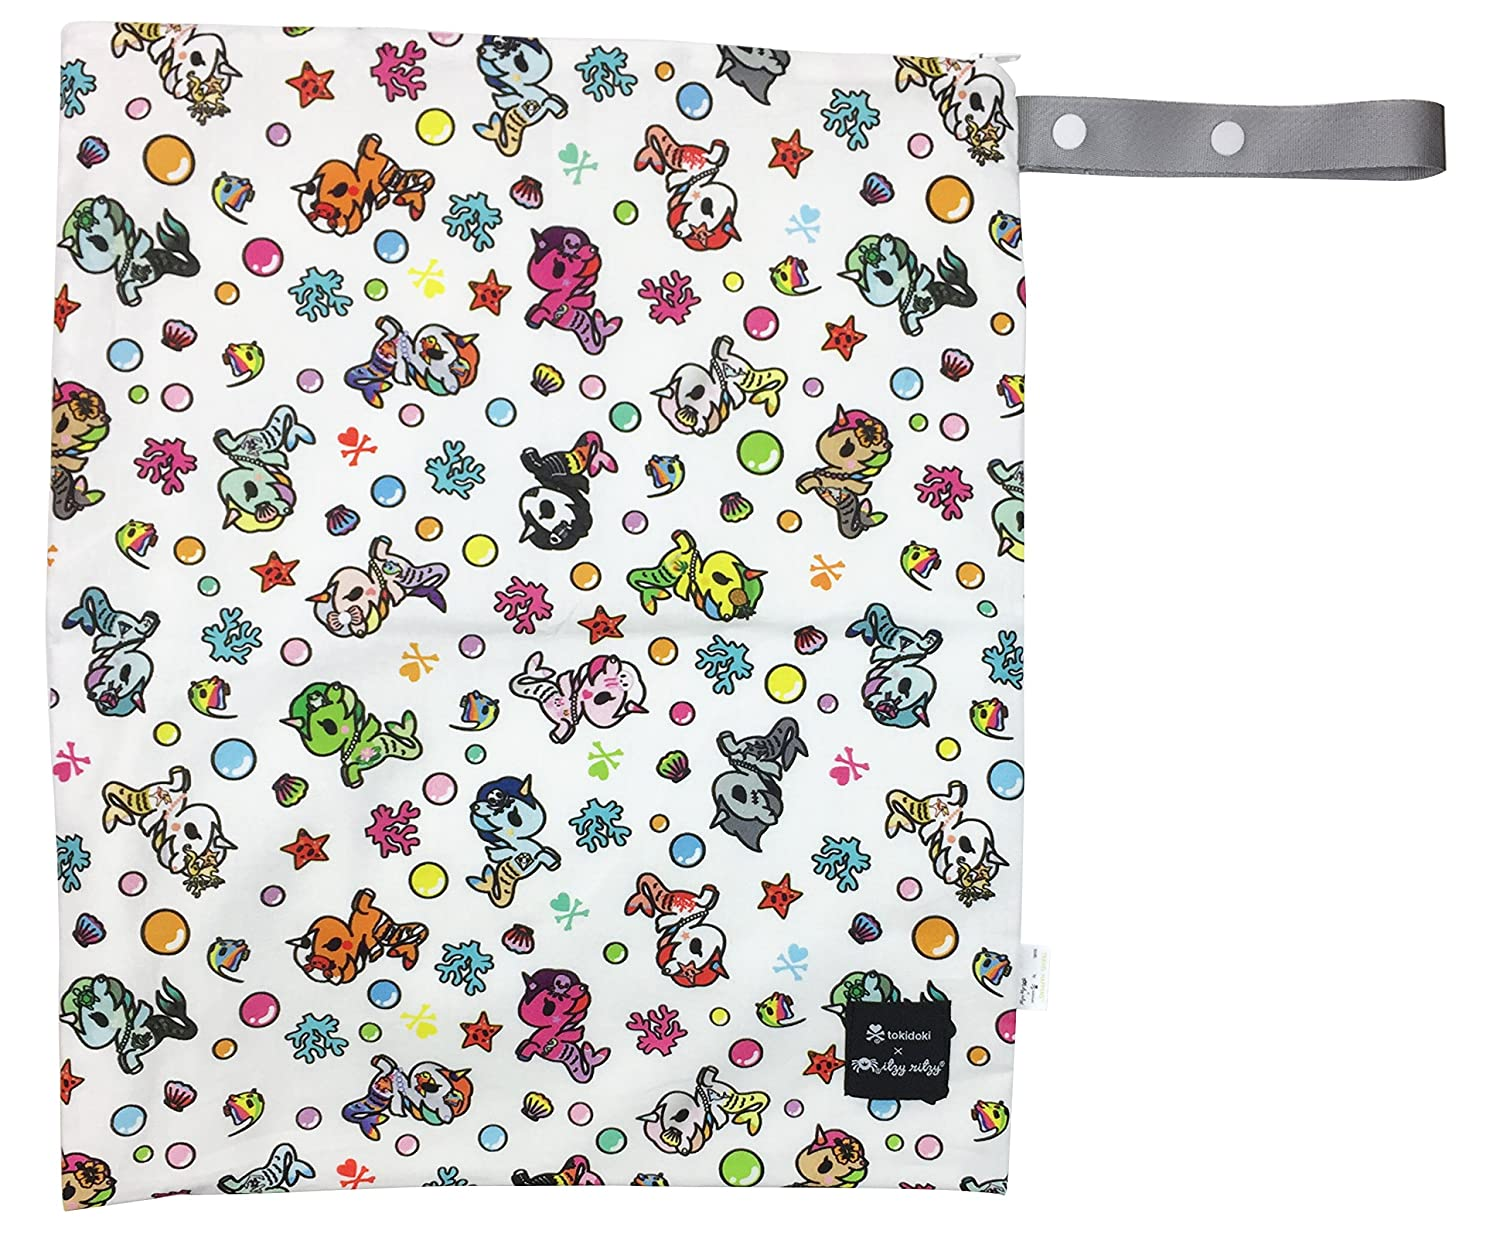 Itzy Ritzy Tokidoki Travel Happens Large Sealed Wet Bag, Underwater Adventure Itzy Ritzy Baby WBLH8144